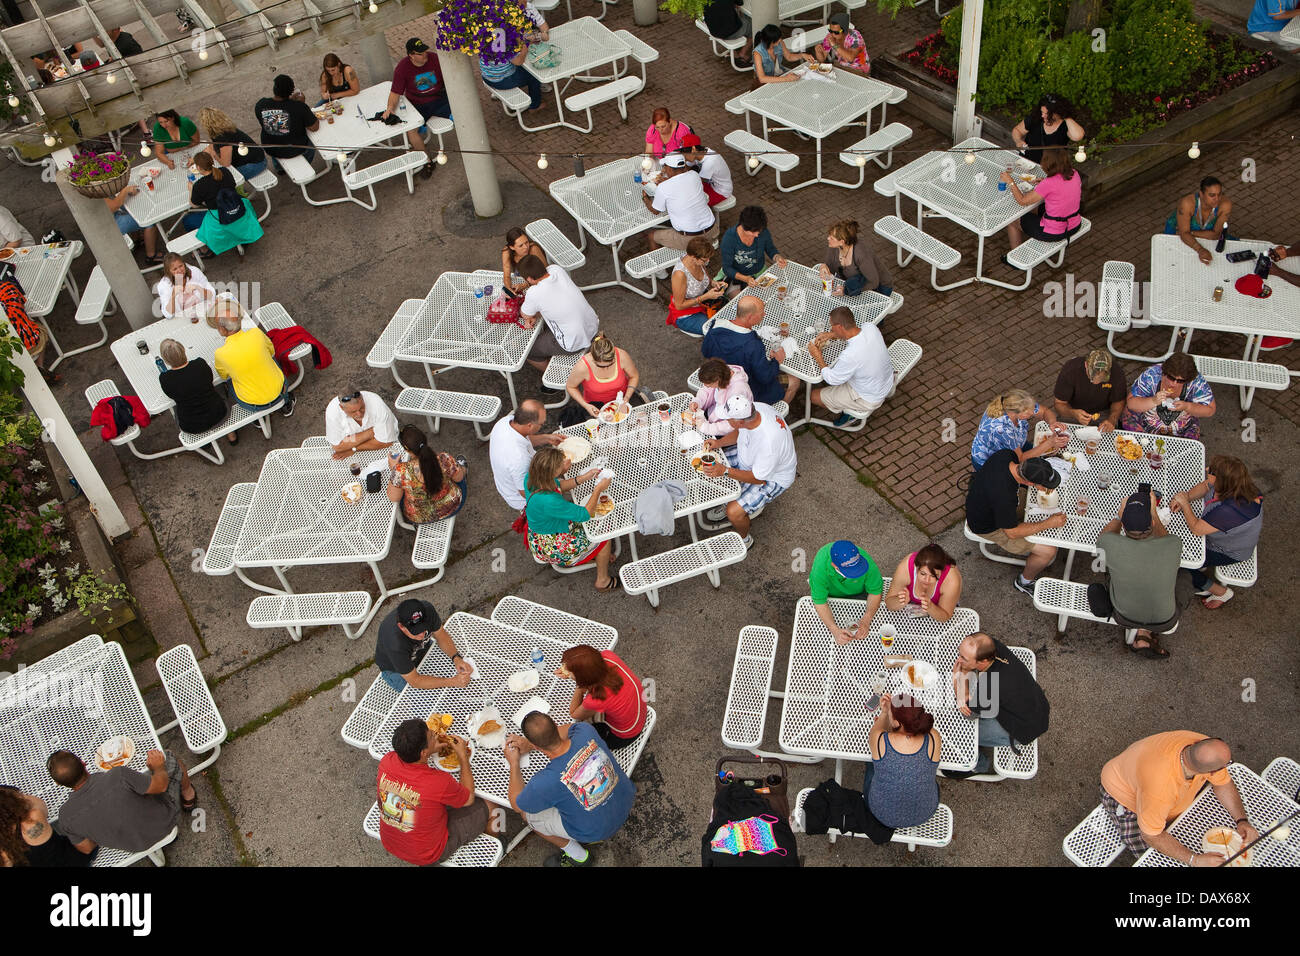 Food court is seen on the Henry W. Maier Festival Park (Summerfest Grounds) in Milwaukee - Stock Image